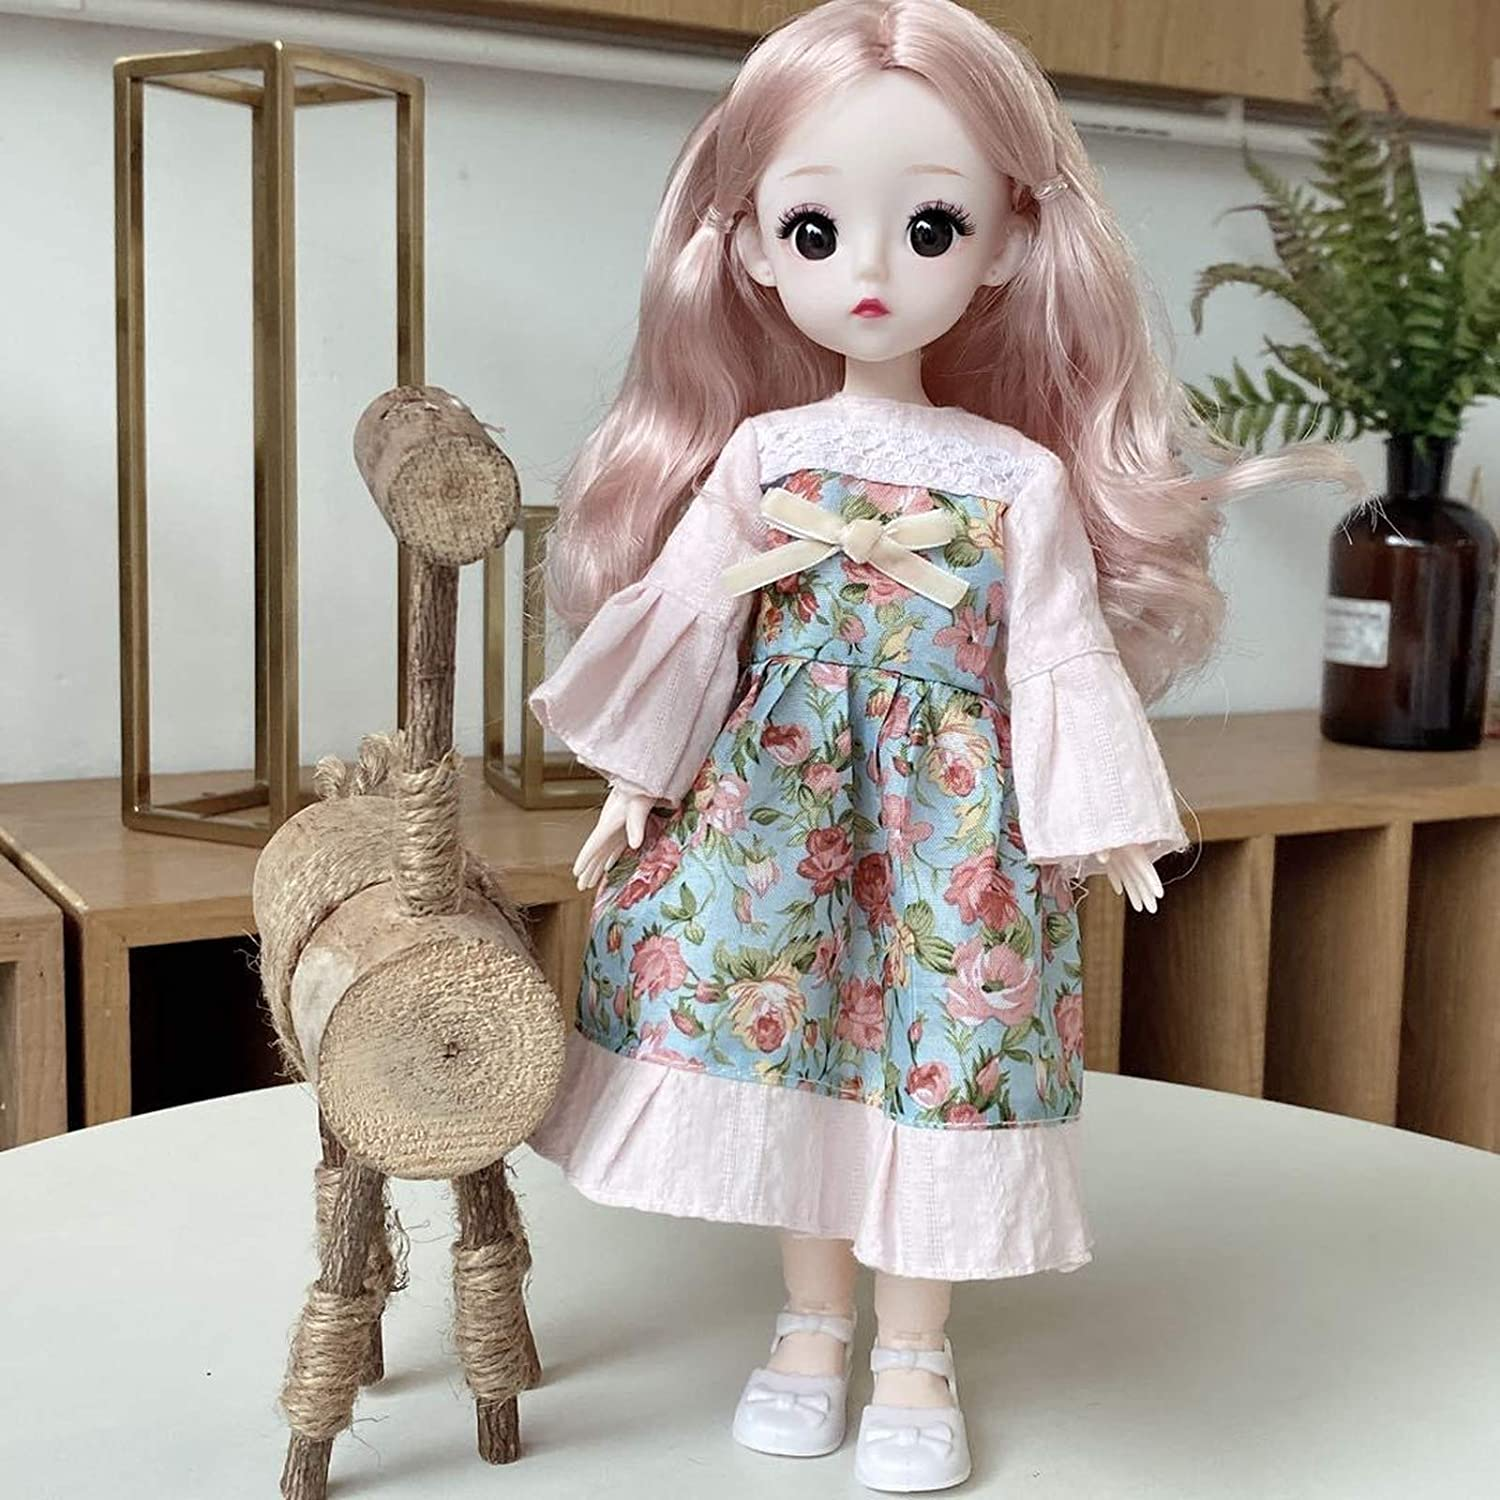 The New 30cm unisex Manufacturer regenerated product Doll Play Birthday Toy House Gift